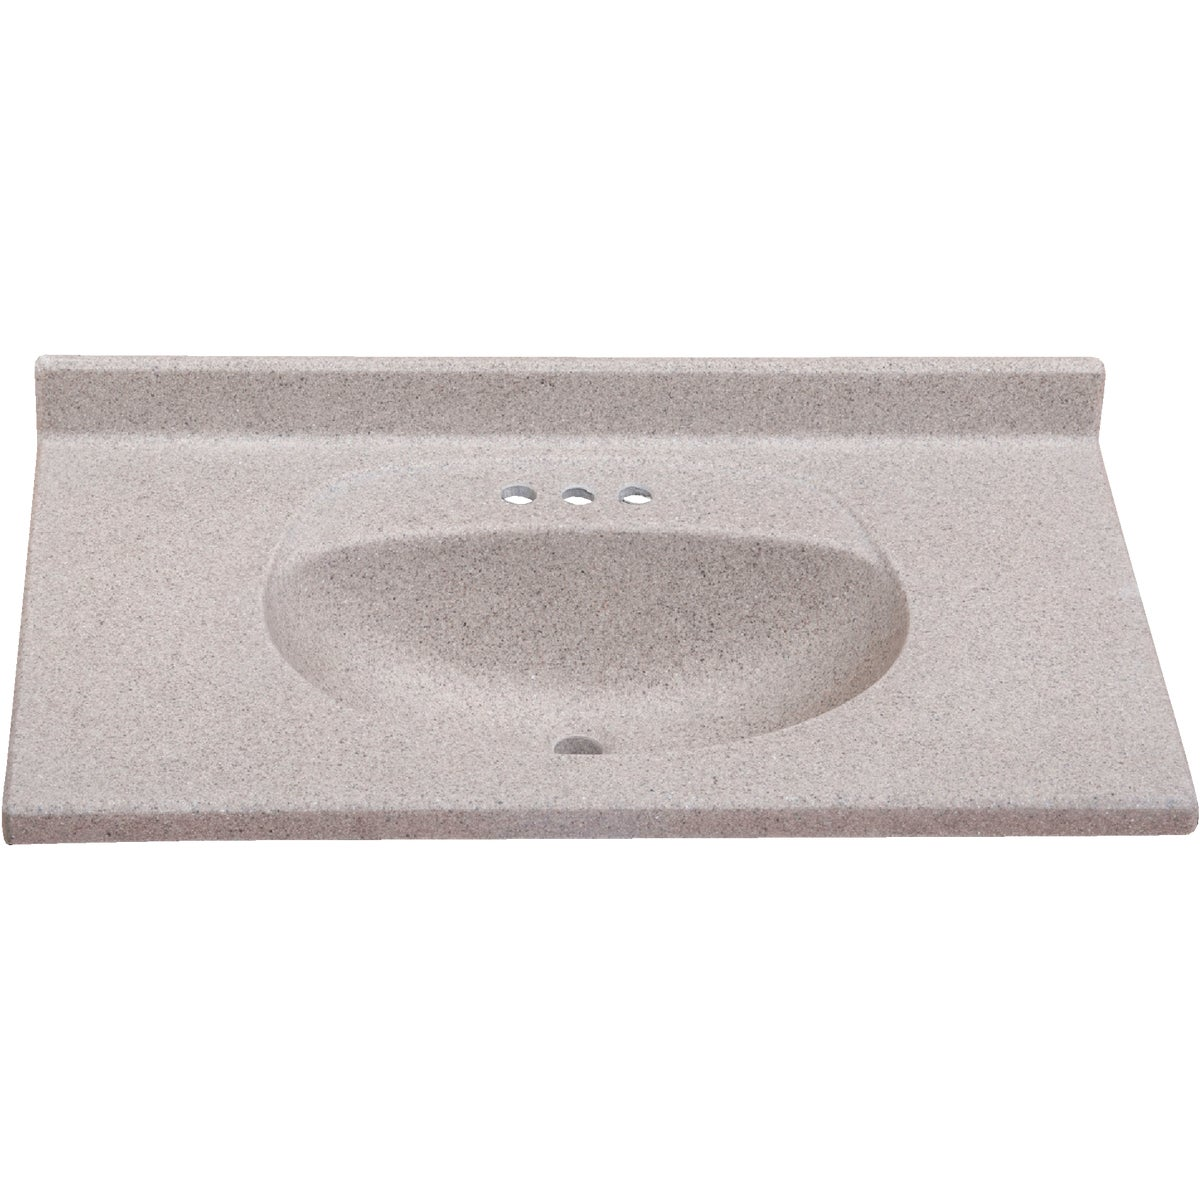 37X22 CAP OLY VANITY TOP - VB3722CAPSS by Imperial Marble Corp